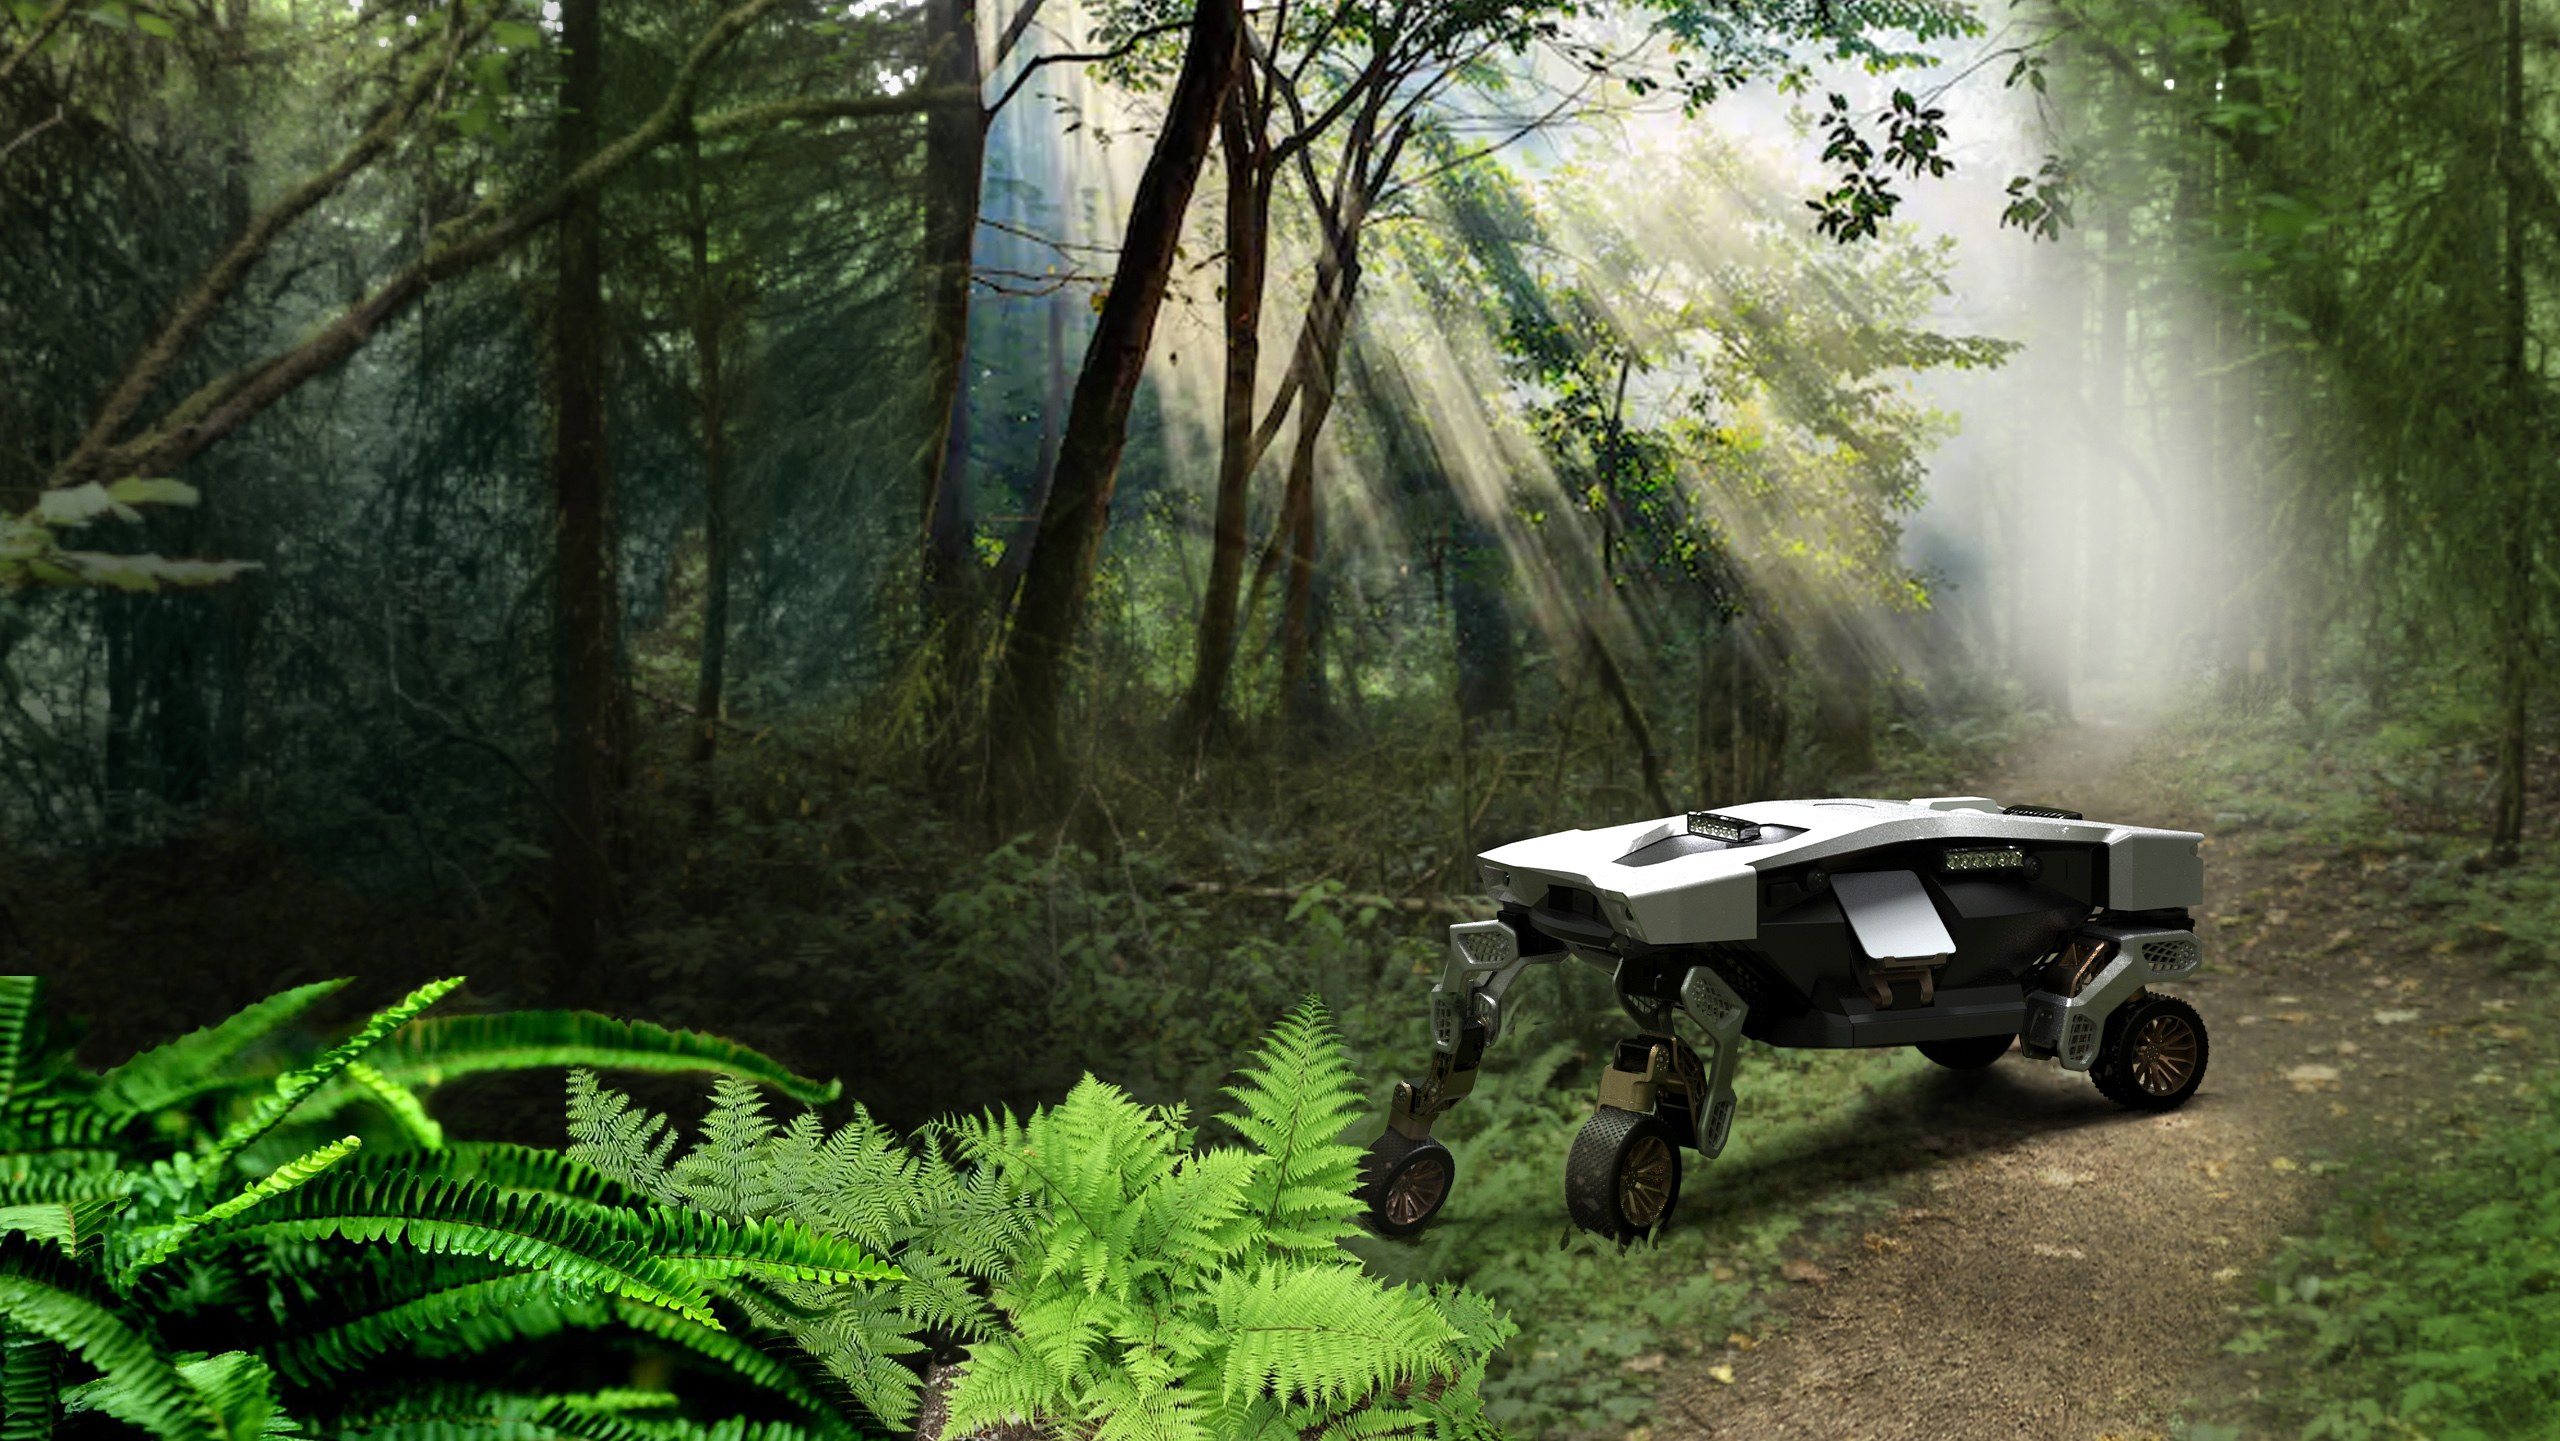 Hyundai's TIGER 'ultimate mobility vehicle' concept is the size of a housecat | Engadget - Engadget